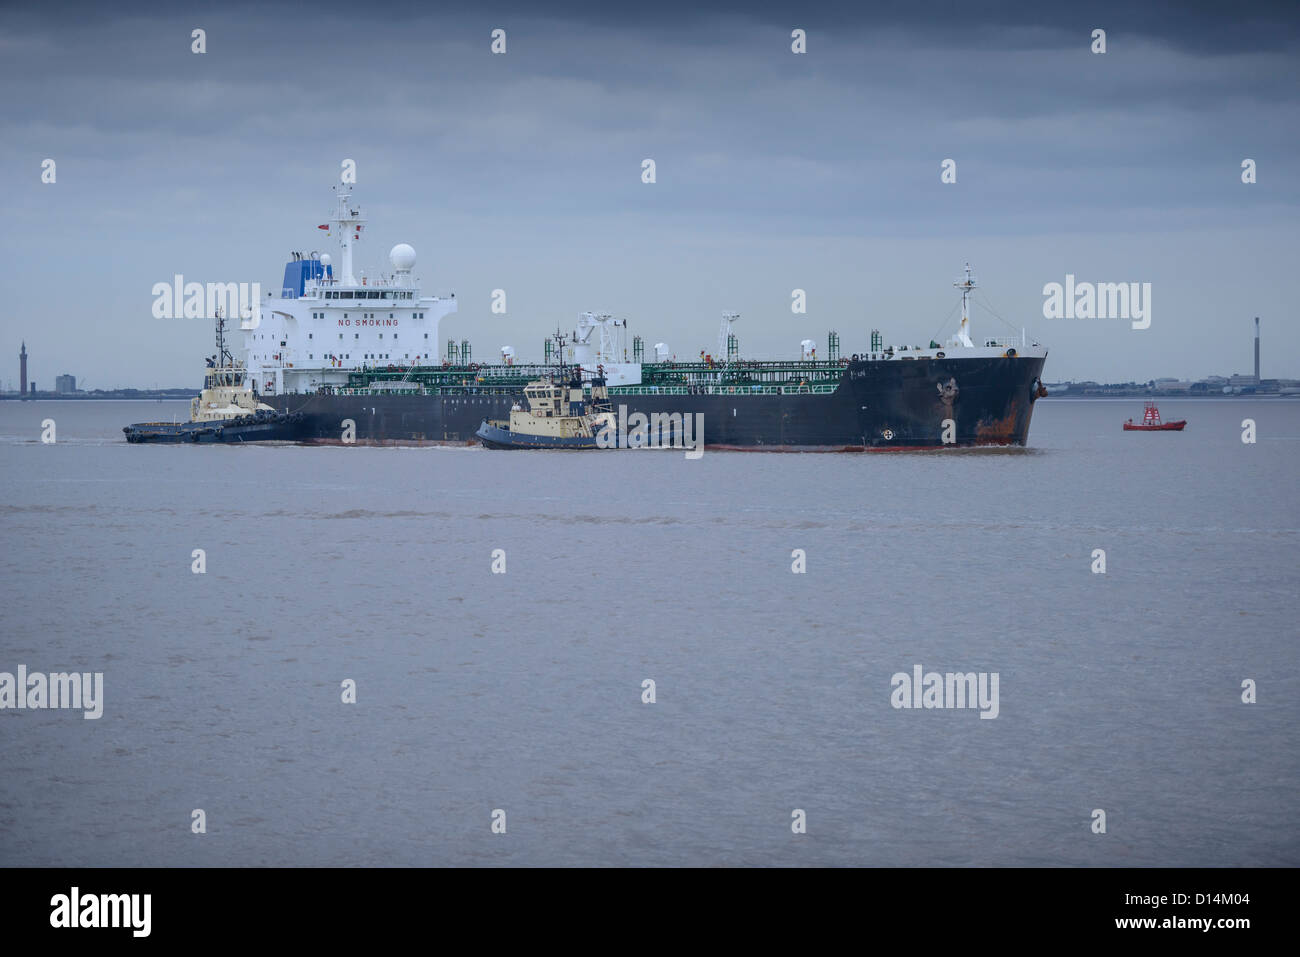 Tugboats pushing ship to harbor - Stock Image